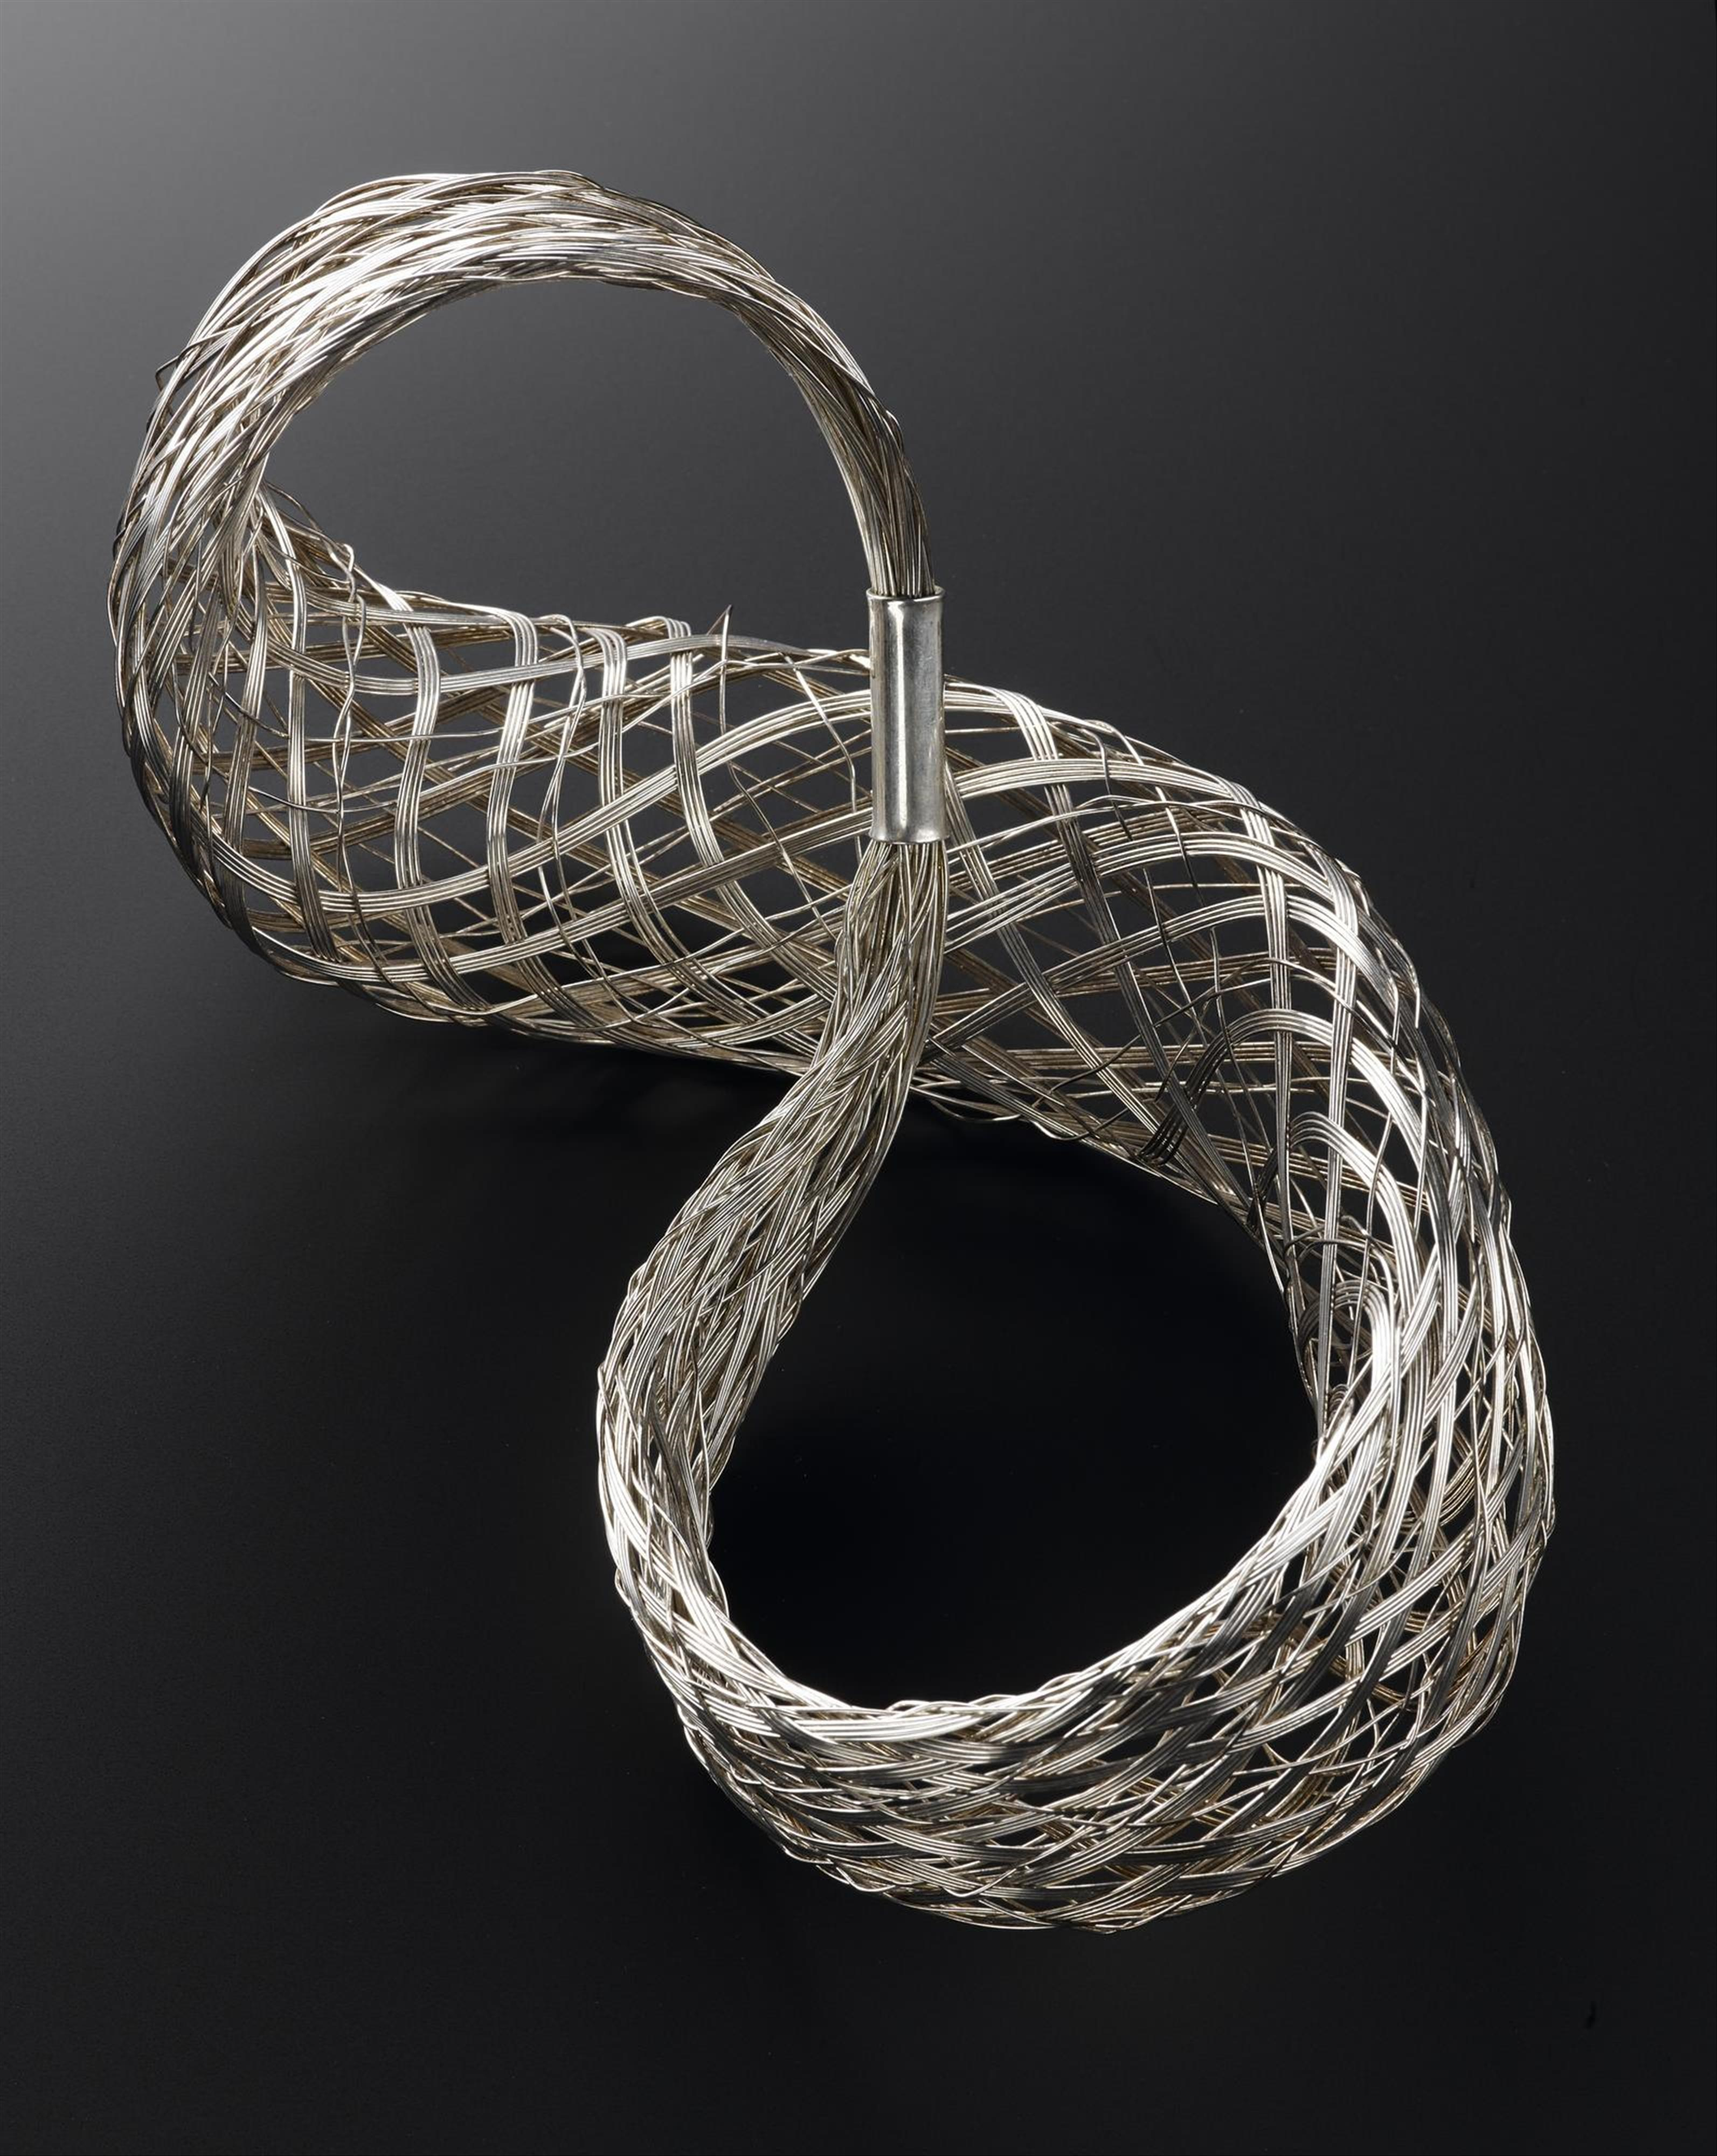 Bracelet of silver wirework: British, designed for Jean Muir by Iain Young and Rachel Leach, Australian Bicentennial Collection, 1988.